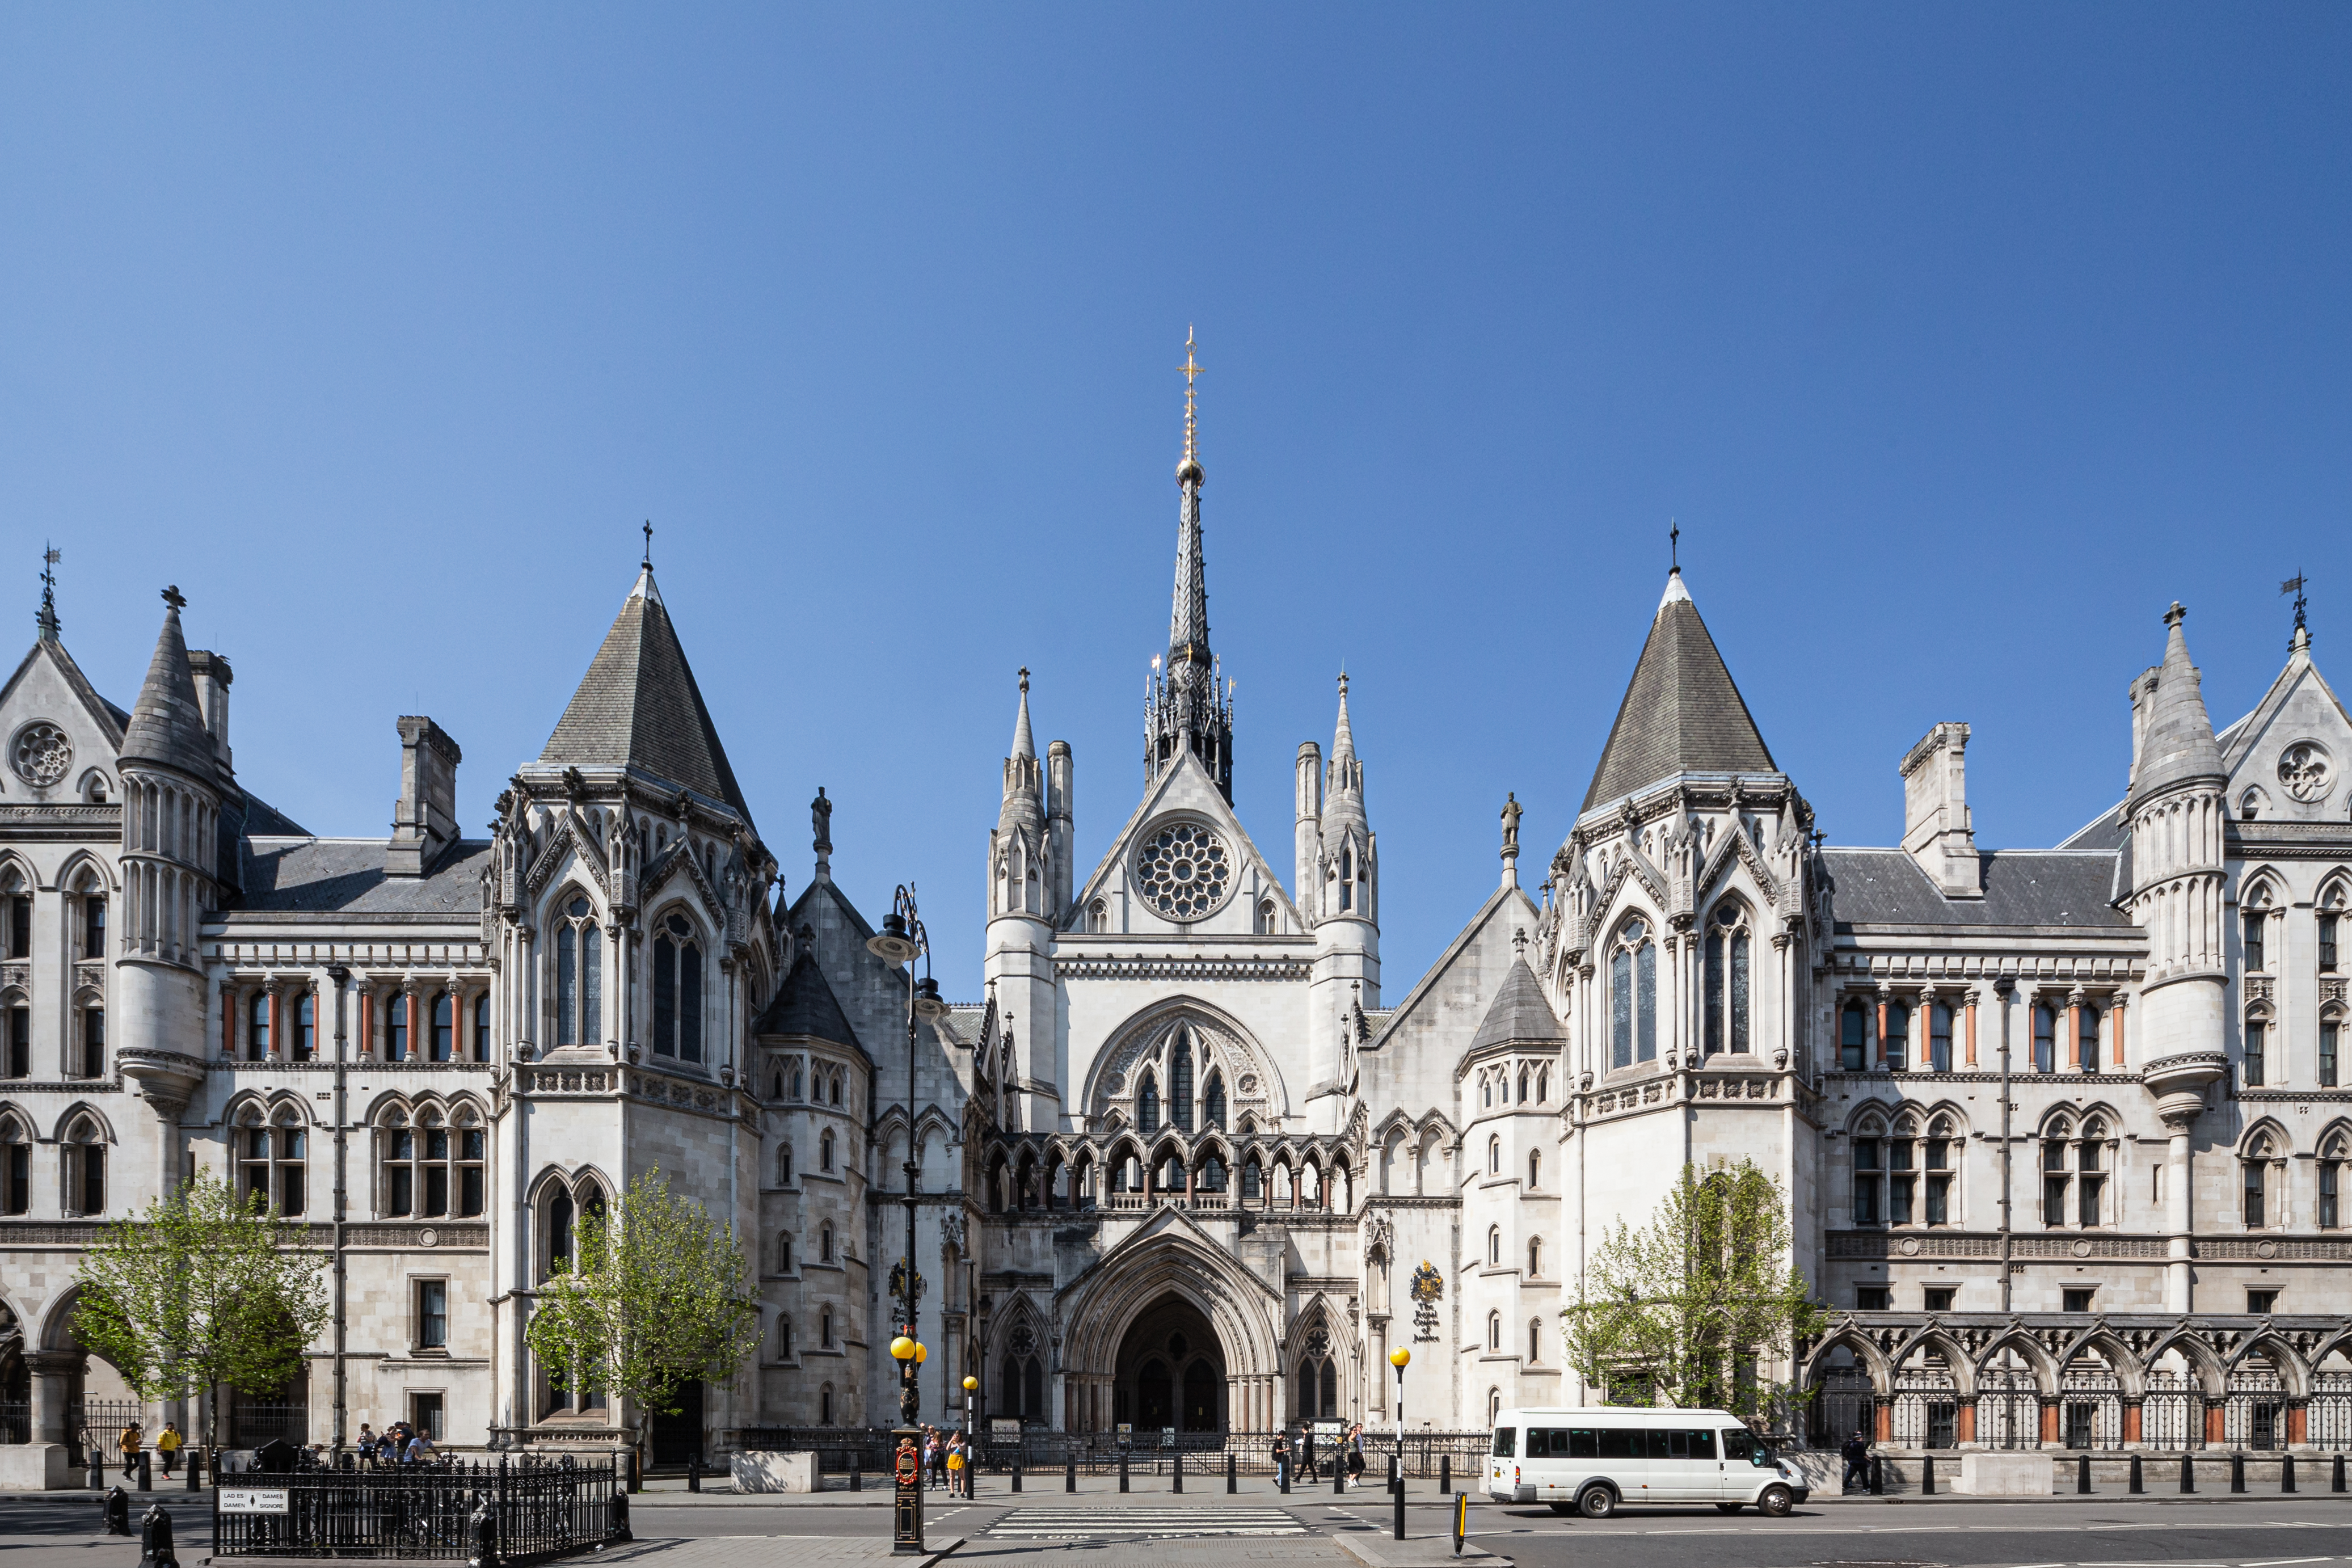 The High Court judgment was handed down remotely due to the ongoing COVID-19 lockdown in the UK. Photo courtesy: Wikimedia